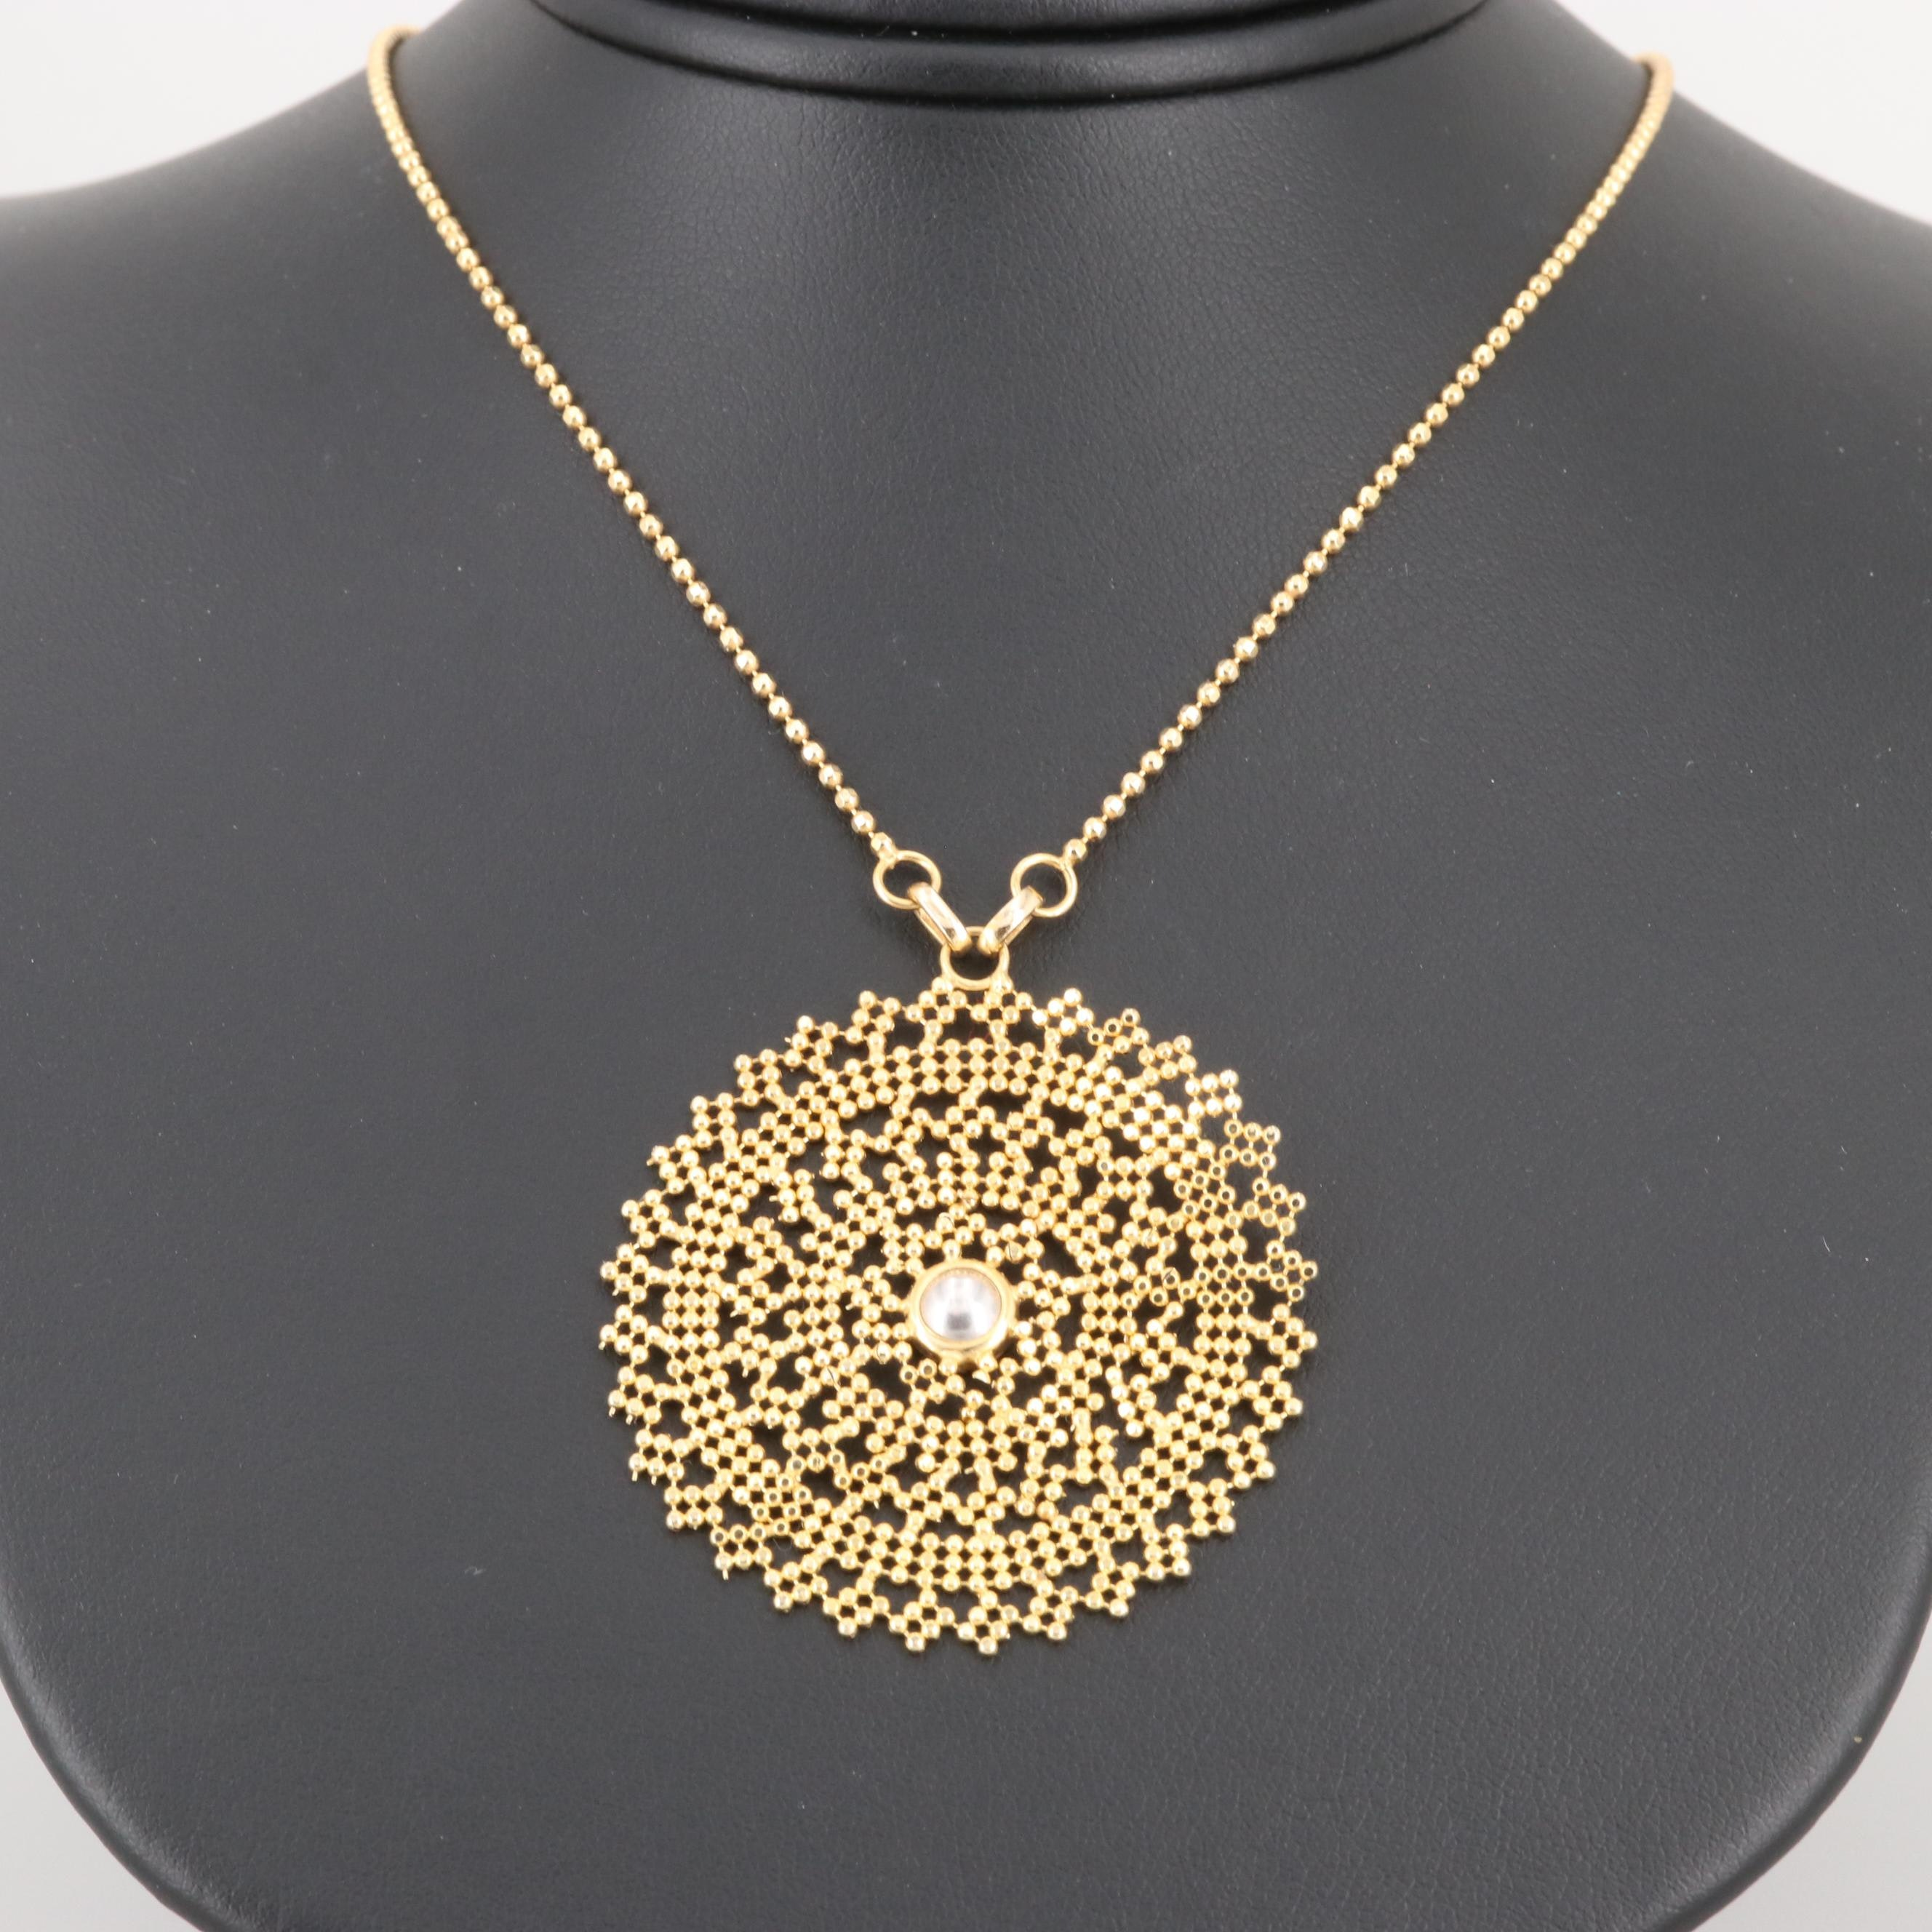 Italian 14K Yellow Gold Pendant Necklace